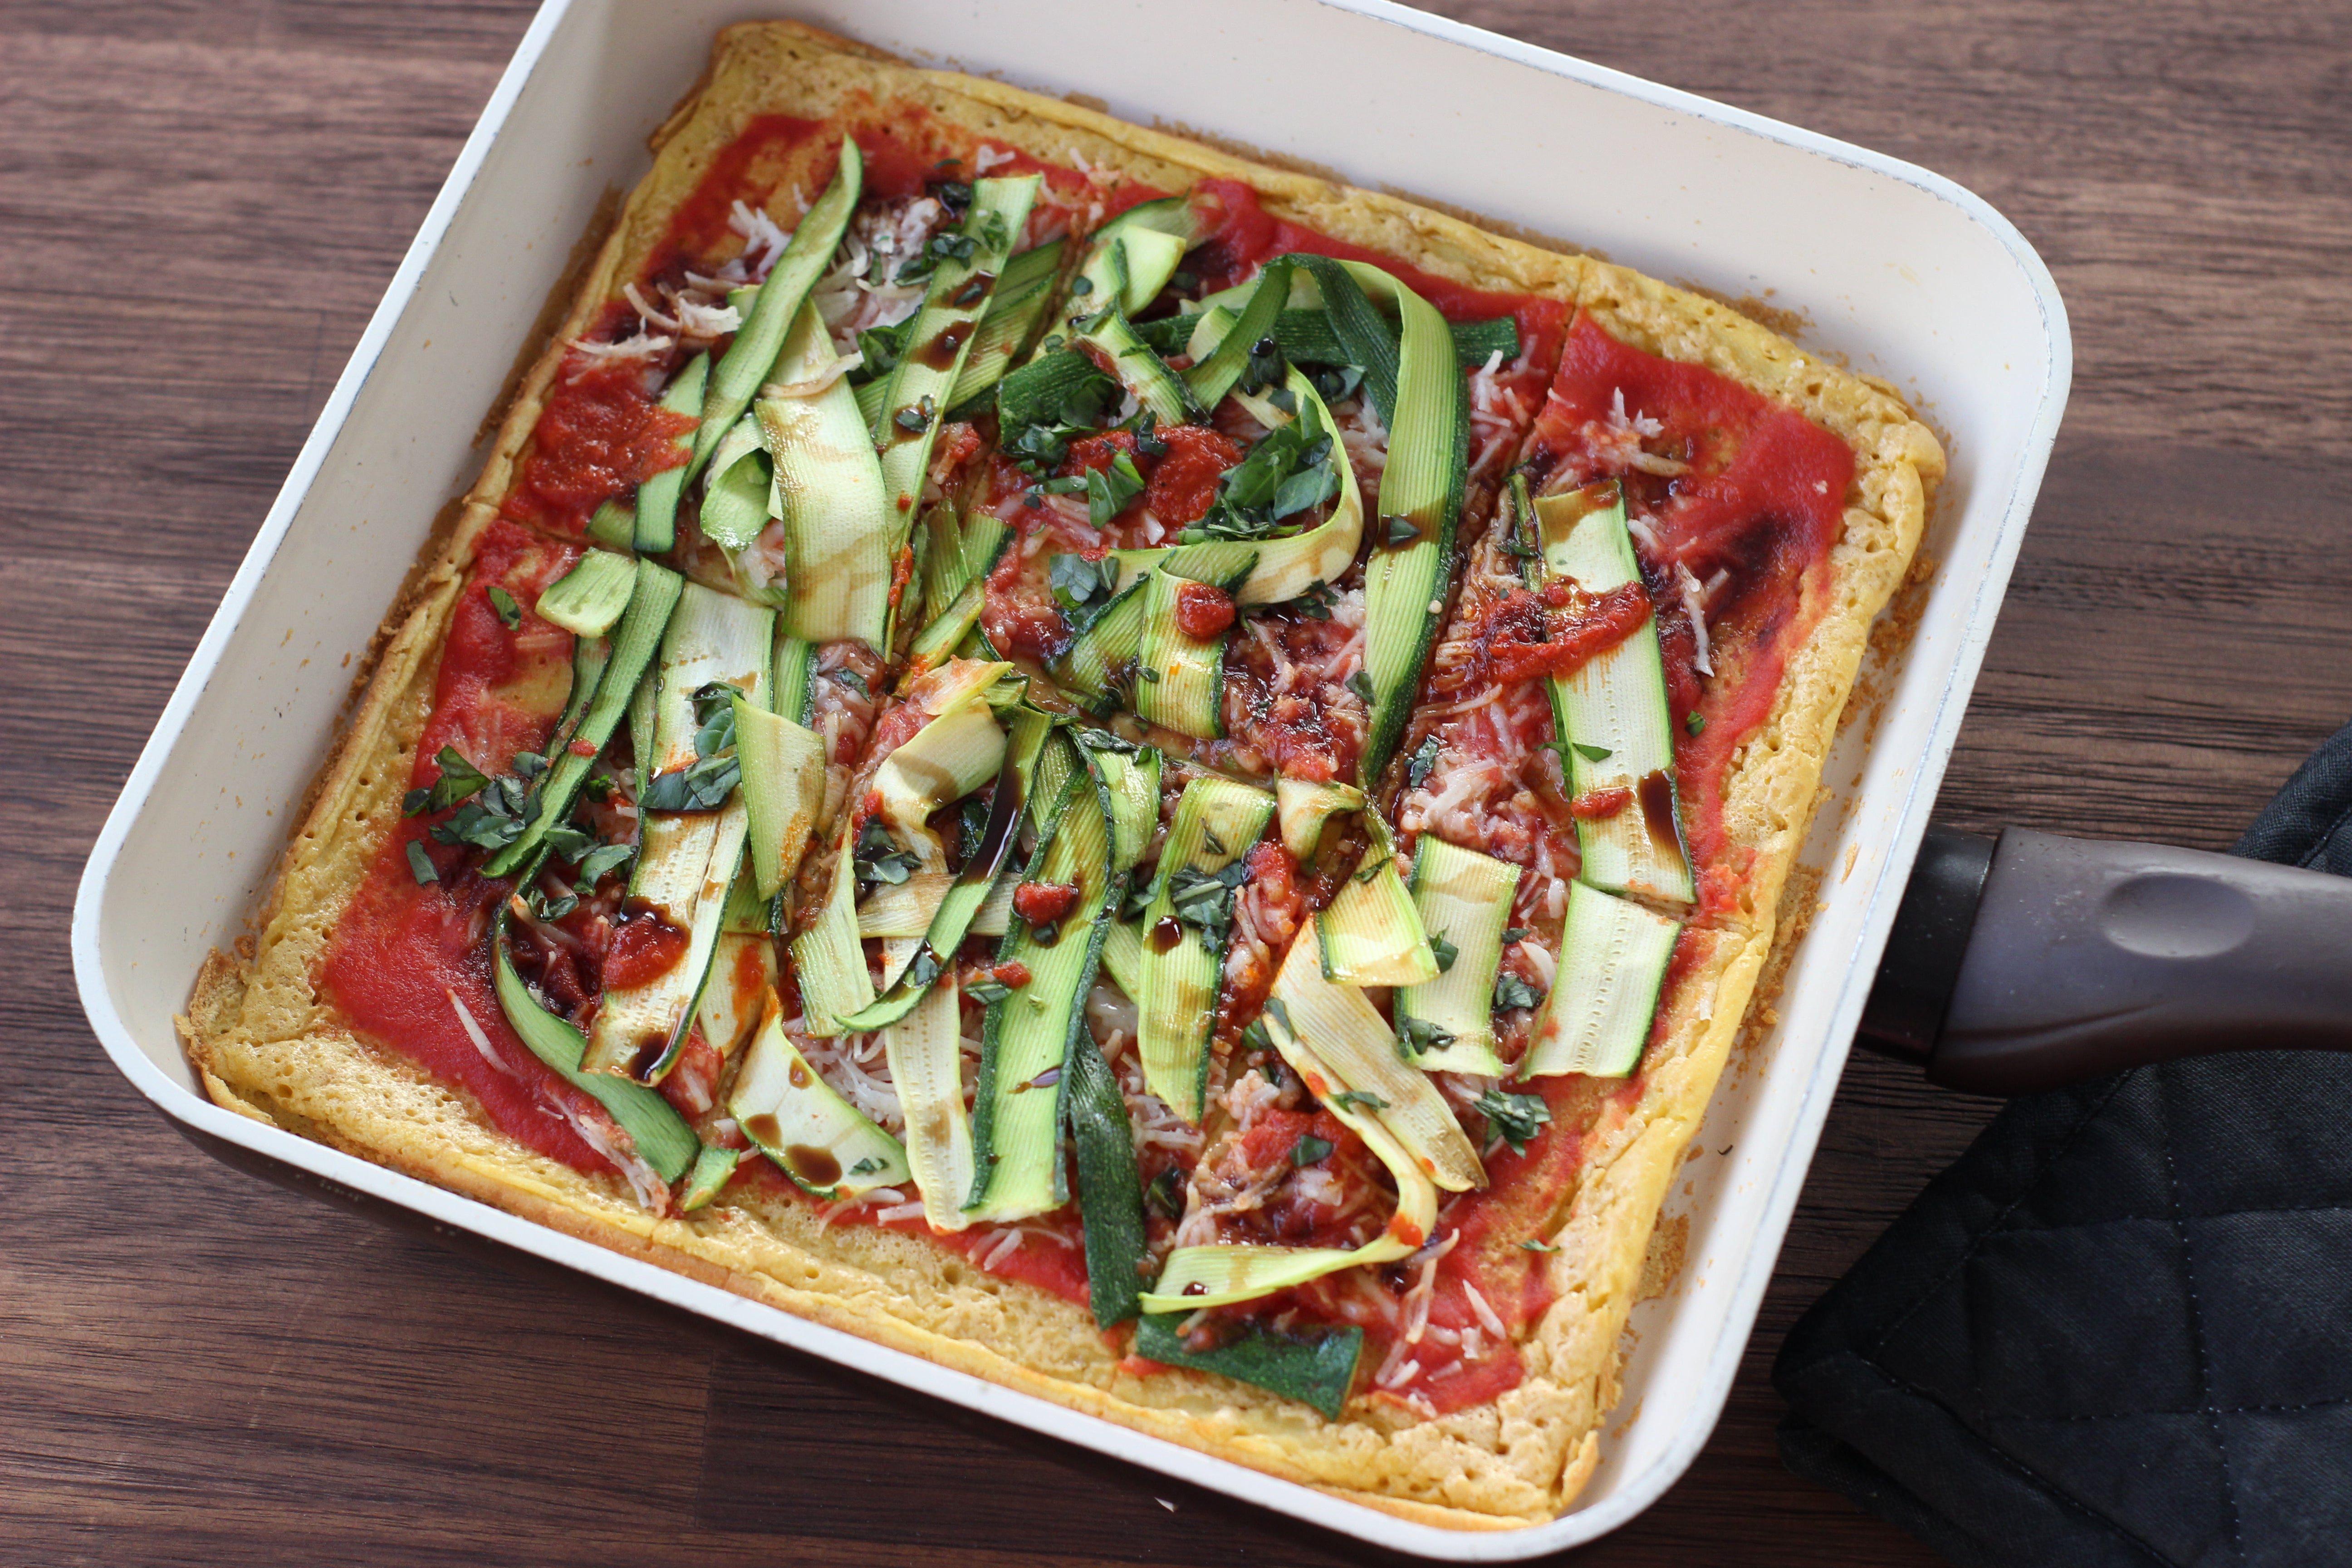 High Protein Chickpea Square Pizza Recipe With Zucchini Ribbons, Chilli Paste & Balsamic Vinegar (Gluten Free & Dairy Free)